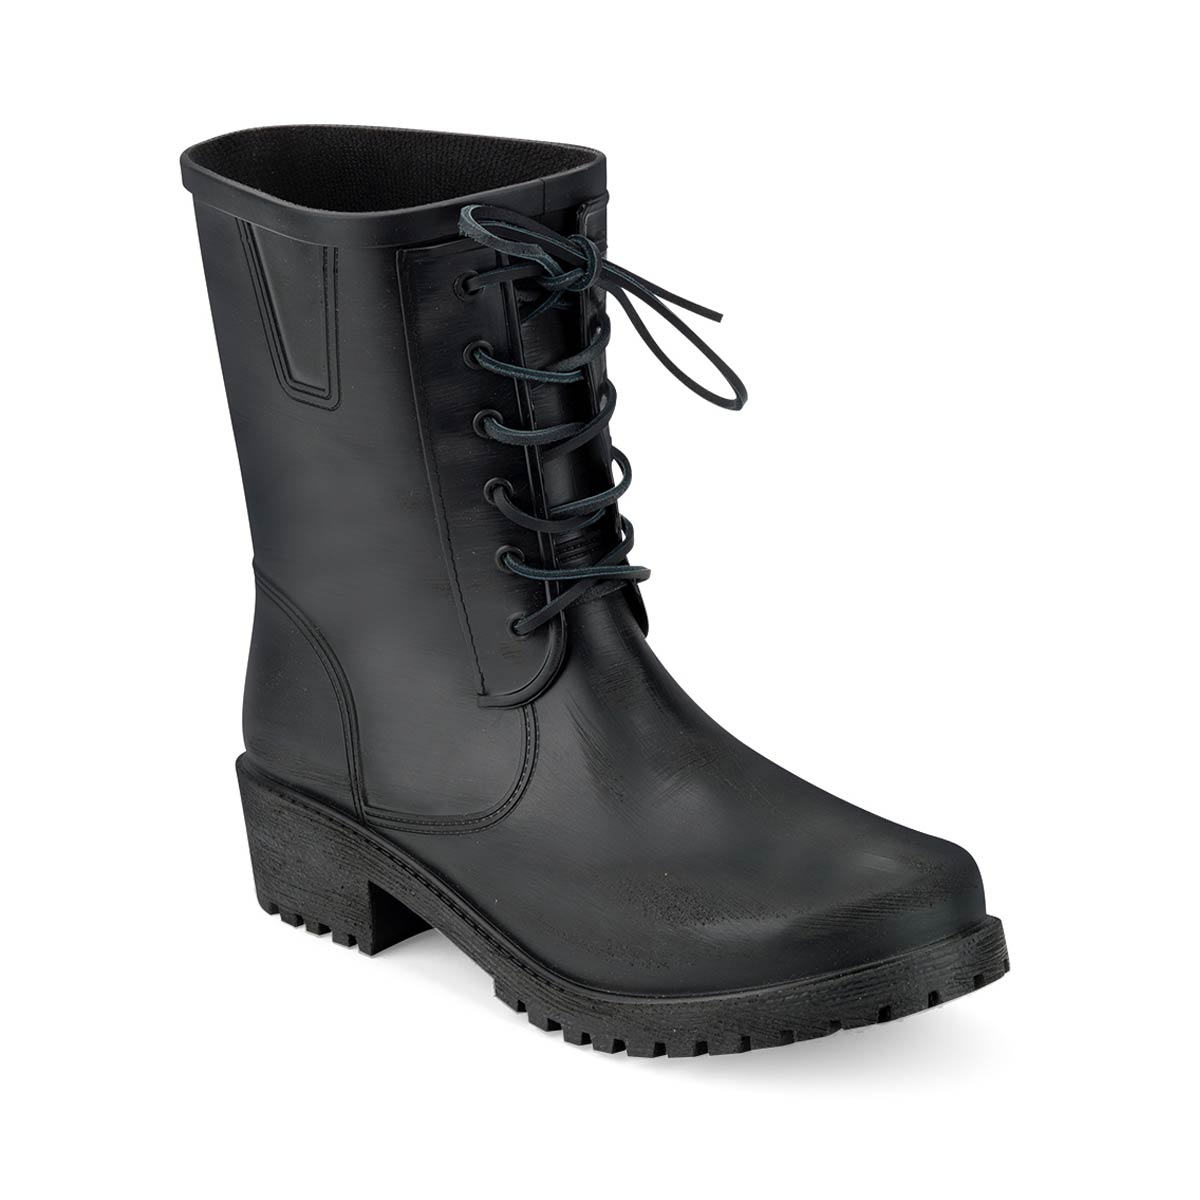 Pvc front lace-effect insert with brushed finish and black leather tie, stitched on biker boot for men